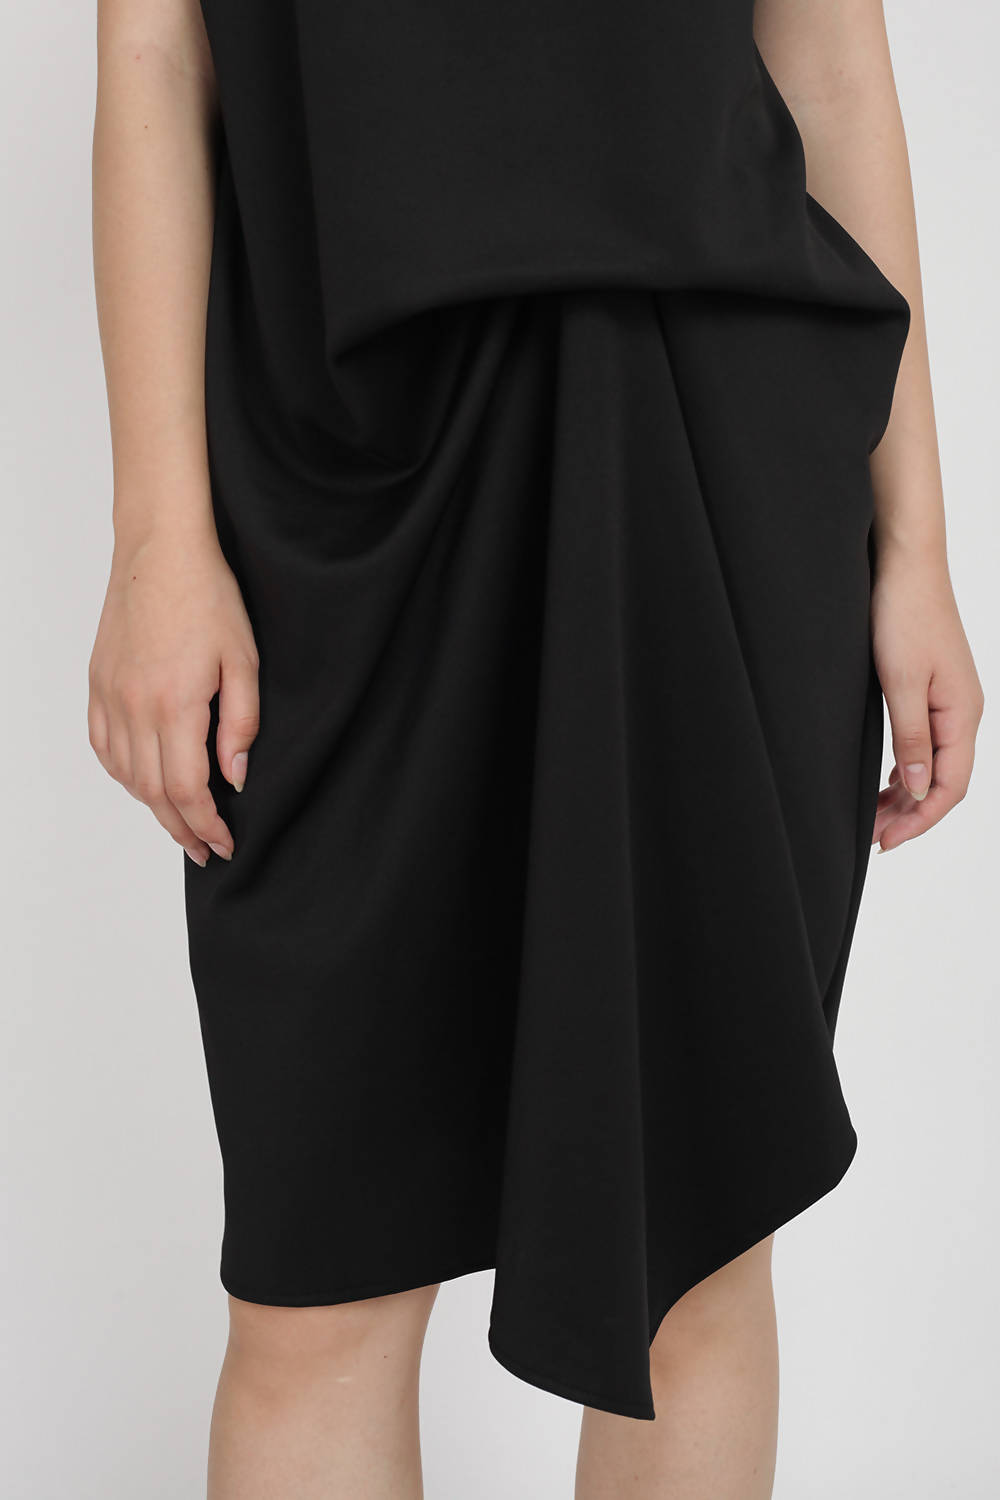 Raya Dress in Black